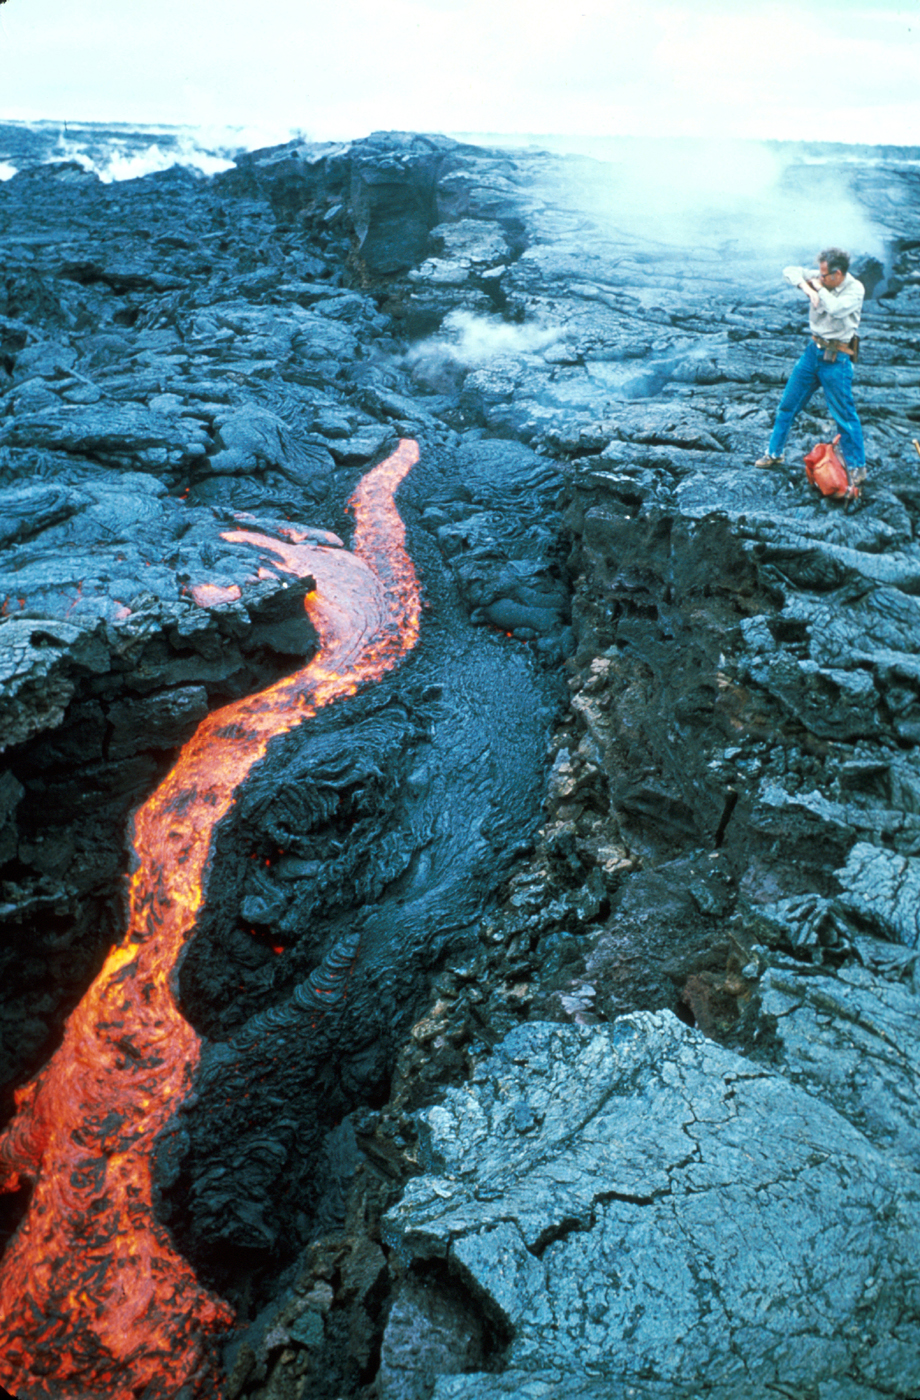 https://upload.wikimedia.org/wikipedia/commons/8/8c/Scientist_collecting_pahoehoe%2C_Kilauea.jpg